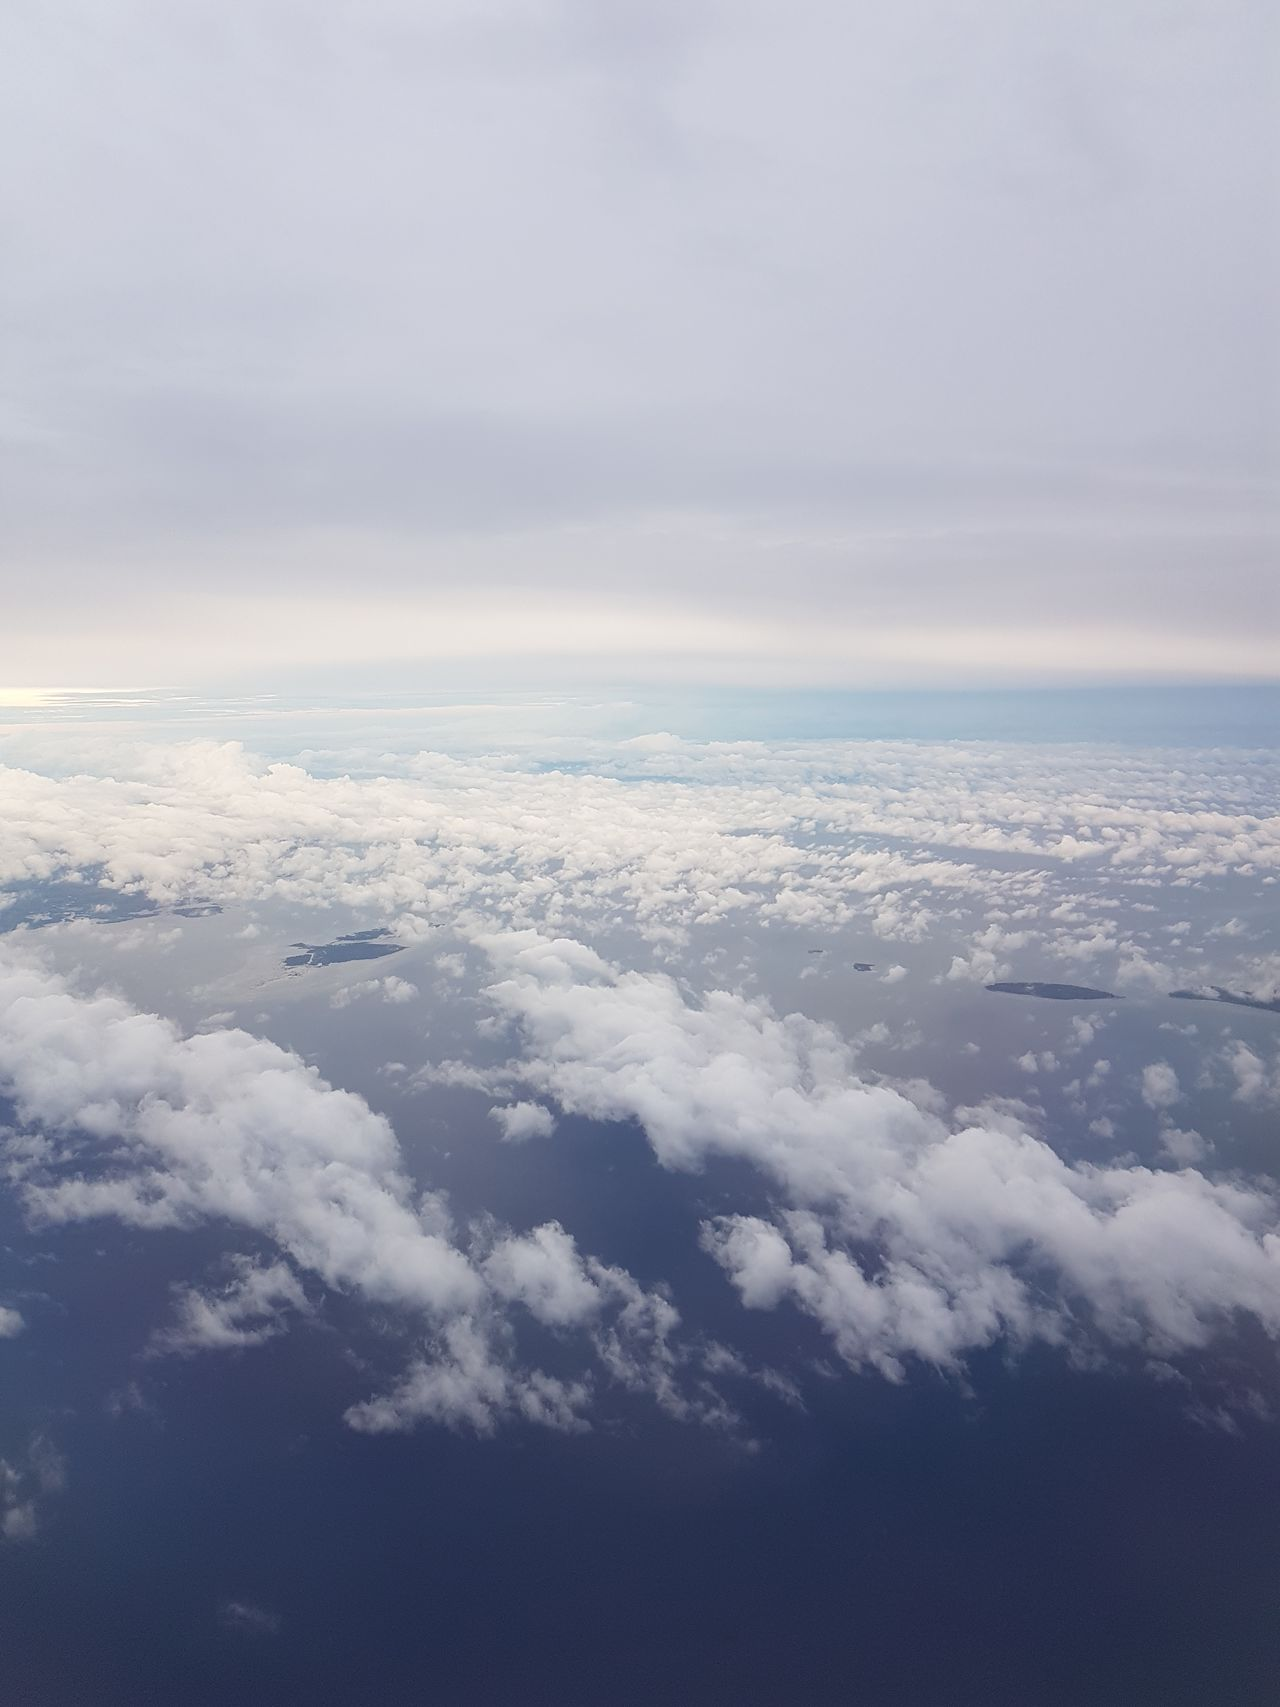 🛫⛅ Window Seat Privileges ⛅✈ EyeEmNewHere First Eyeem Photo Eyeem Philippines Samsung Galaxy S7 No Edits No Filters Travel Travel Photography Vacations Nature Beauty In Nature Tranquility No People Cloud - Sky Environment Sky Blue Aerial View Stratosphere Cloudscape Sea Airplane Water Heaven Scenics